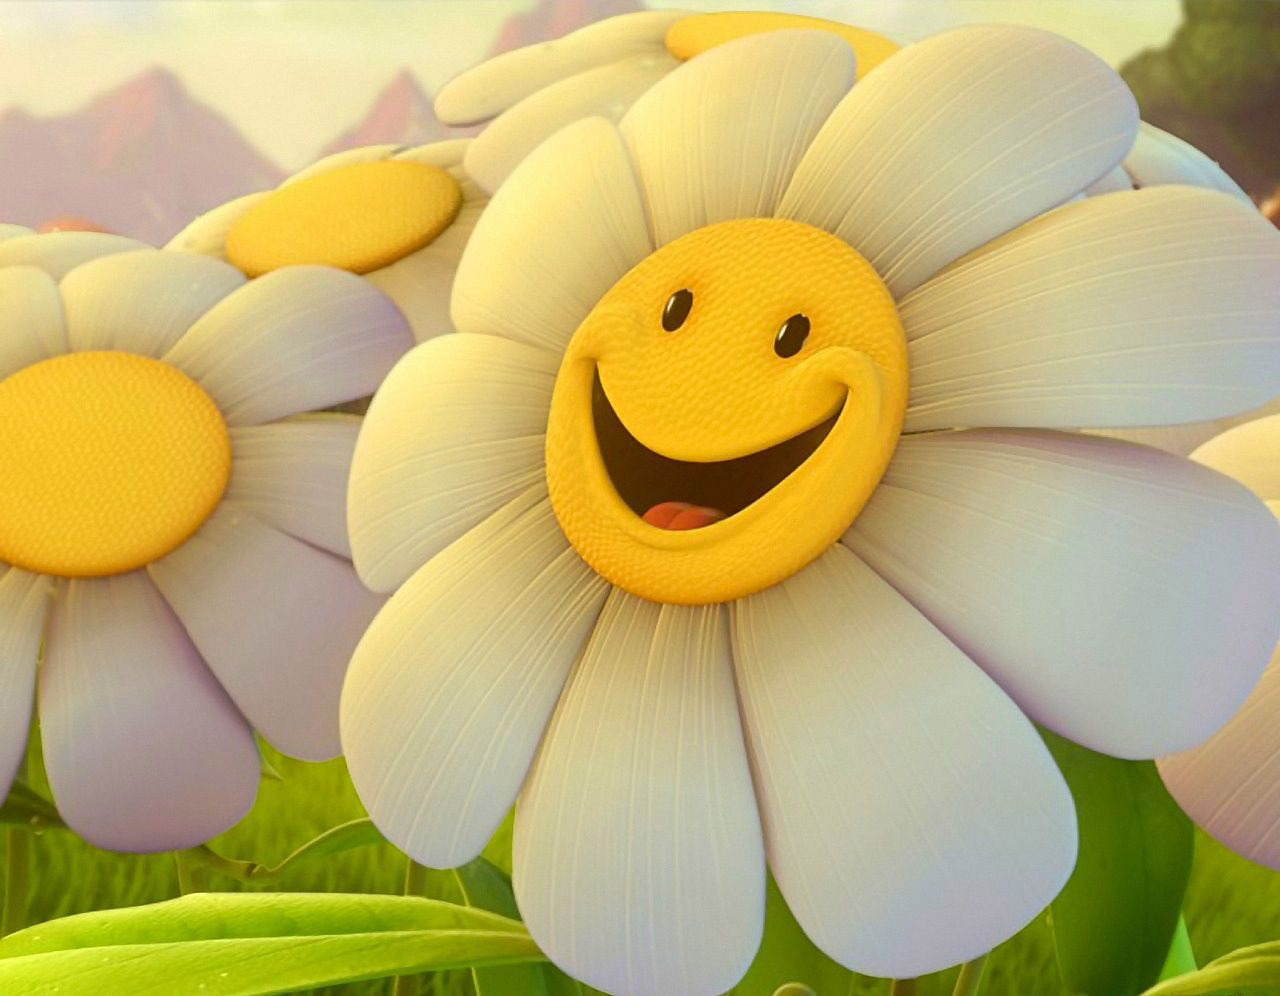 http://1.bp.blogspot.com/--iB6efeOqeg/TfnvcUSPsJI/AAAAAAAABTw/2qBnN9R5ioY/s1600/Smiley_Flower_Happy%252521_wallpaper.jpeg